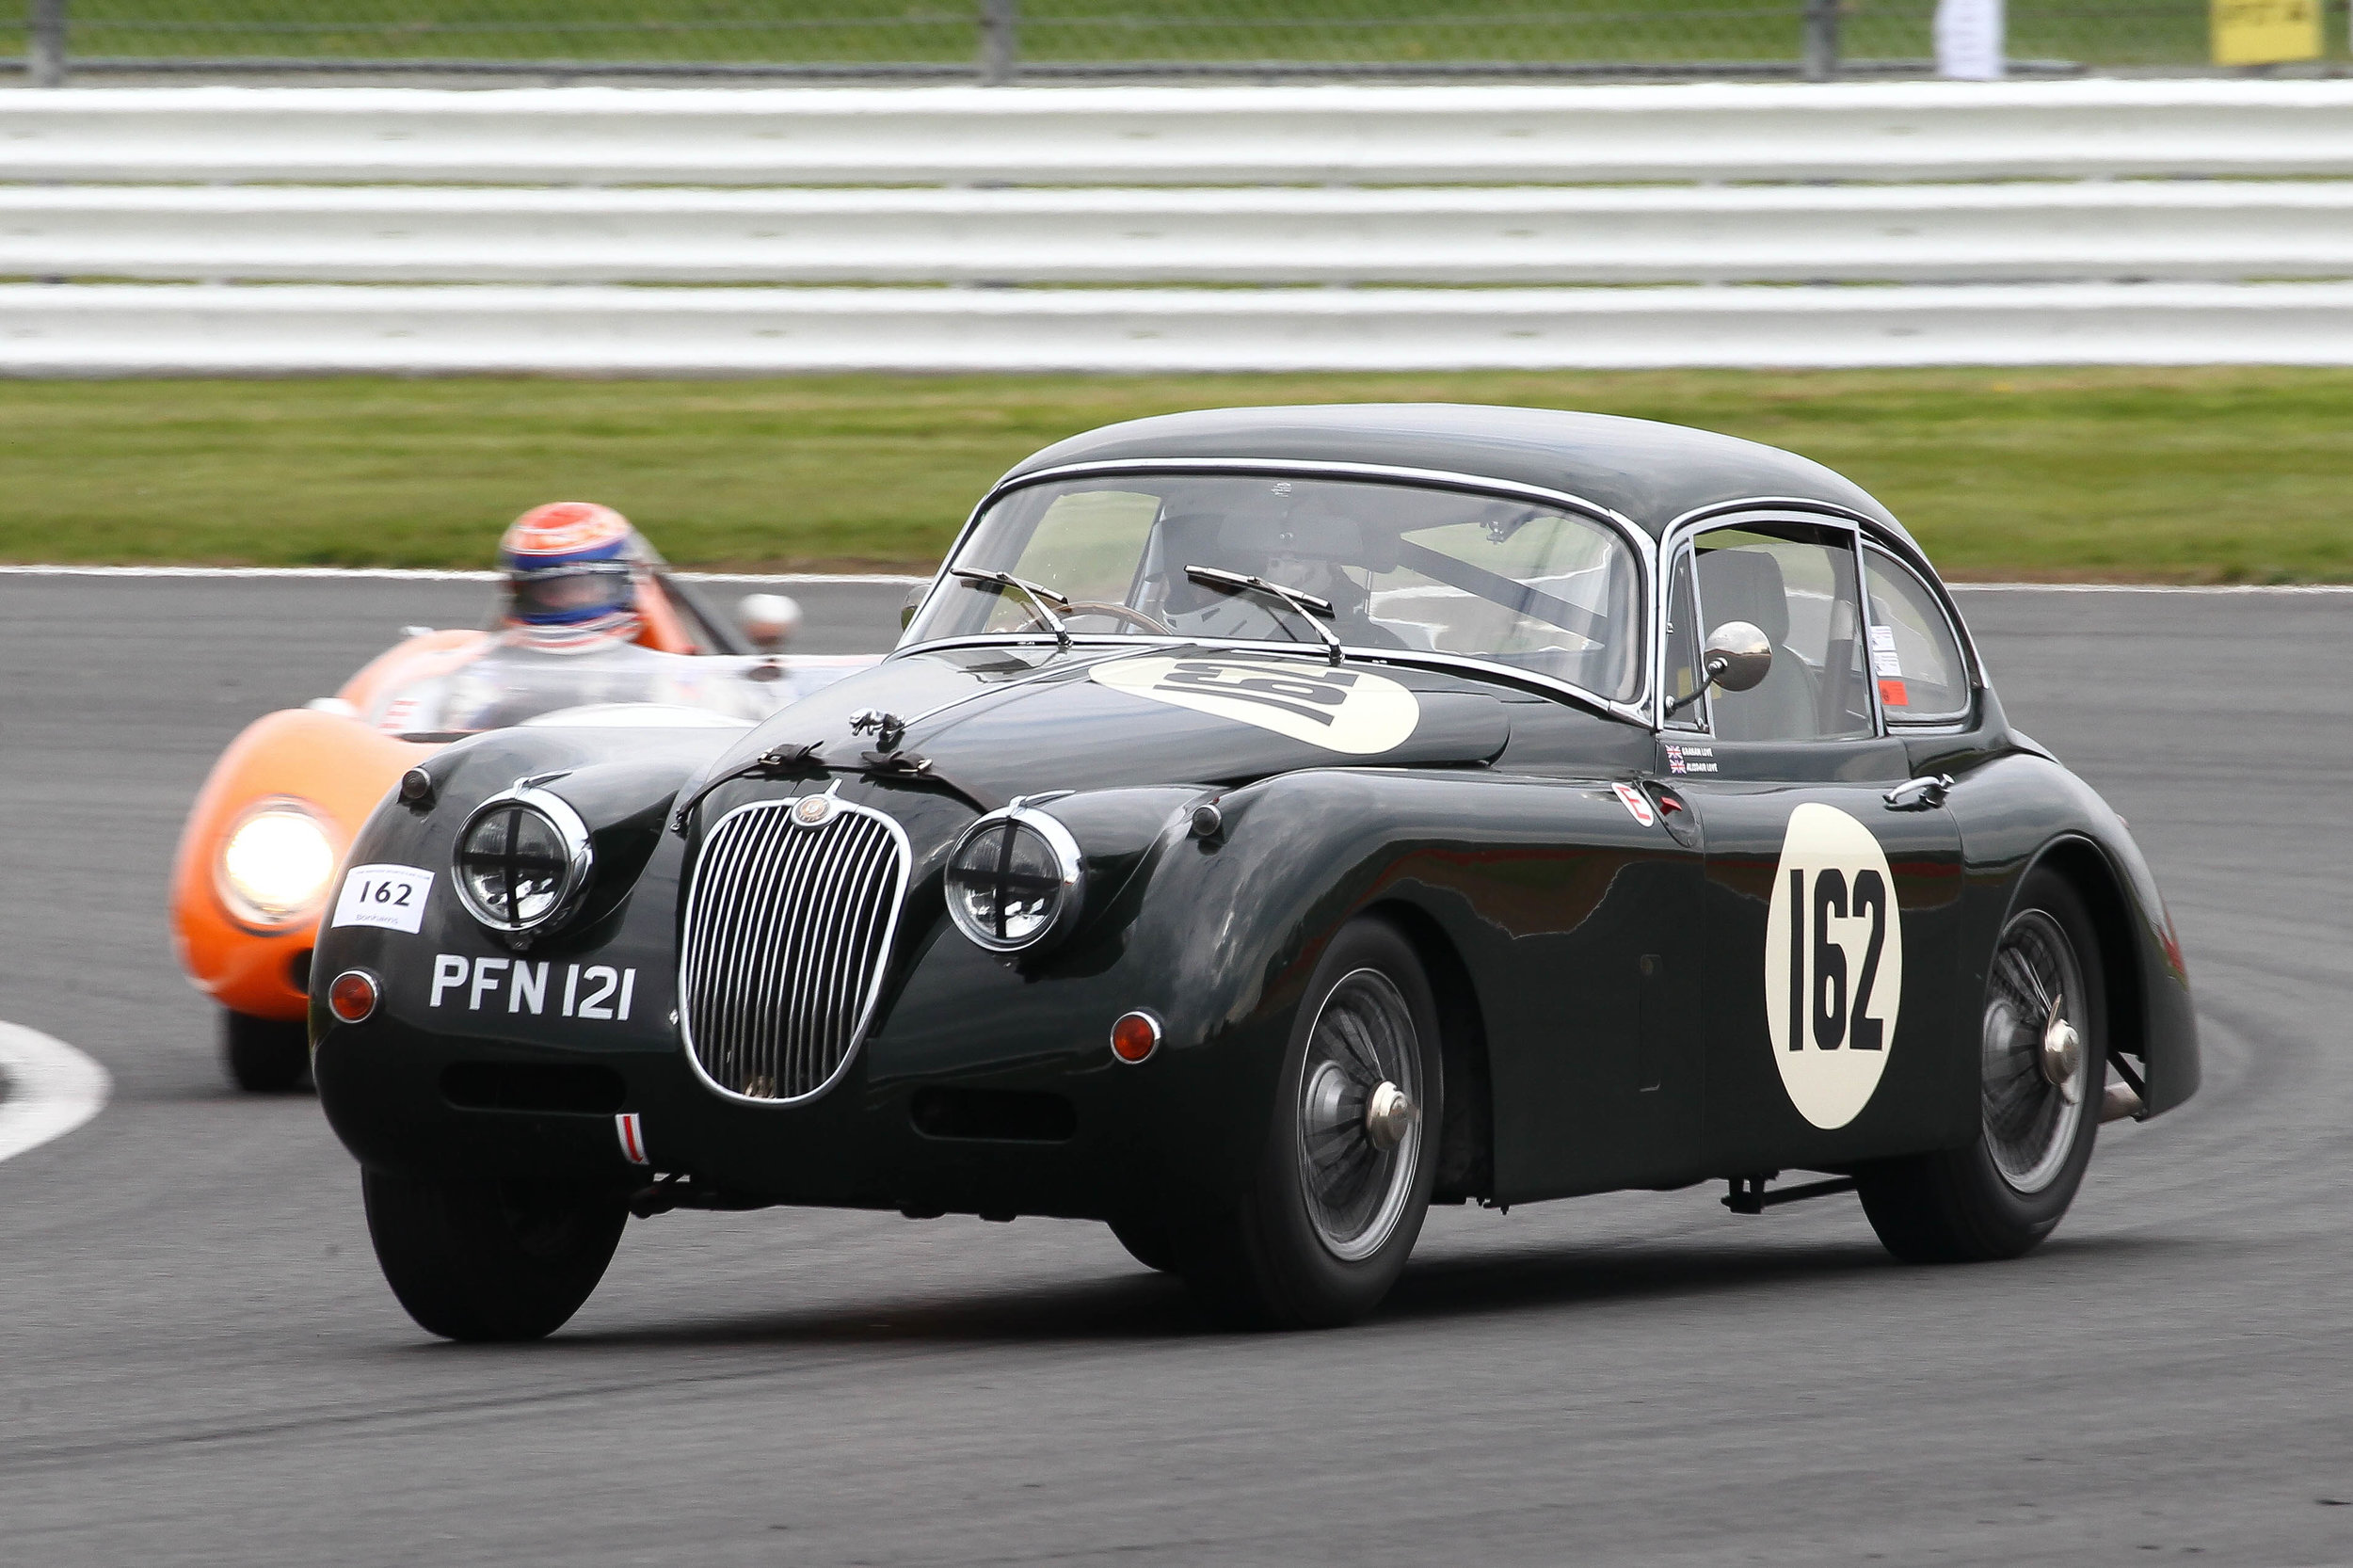 Graham Love in the Jaguar XK150. Photo - Richard Styles